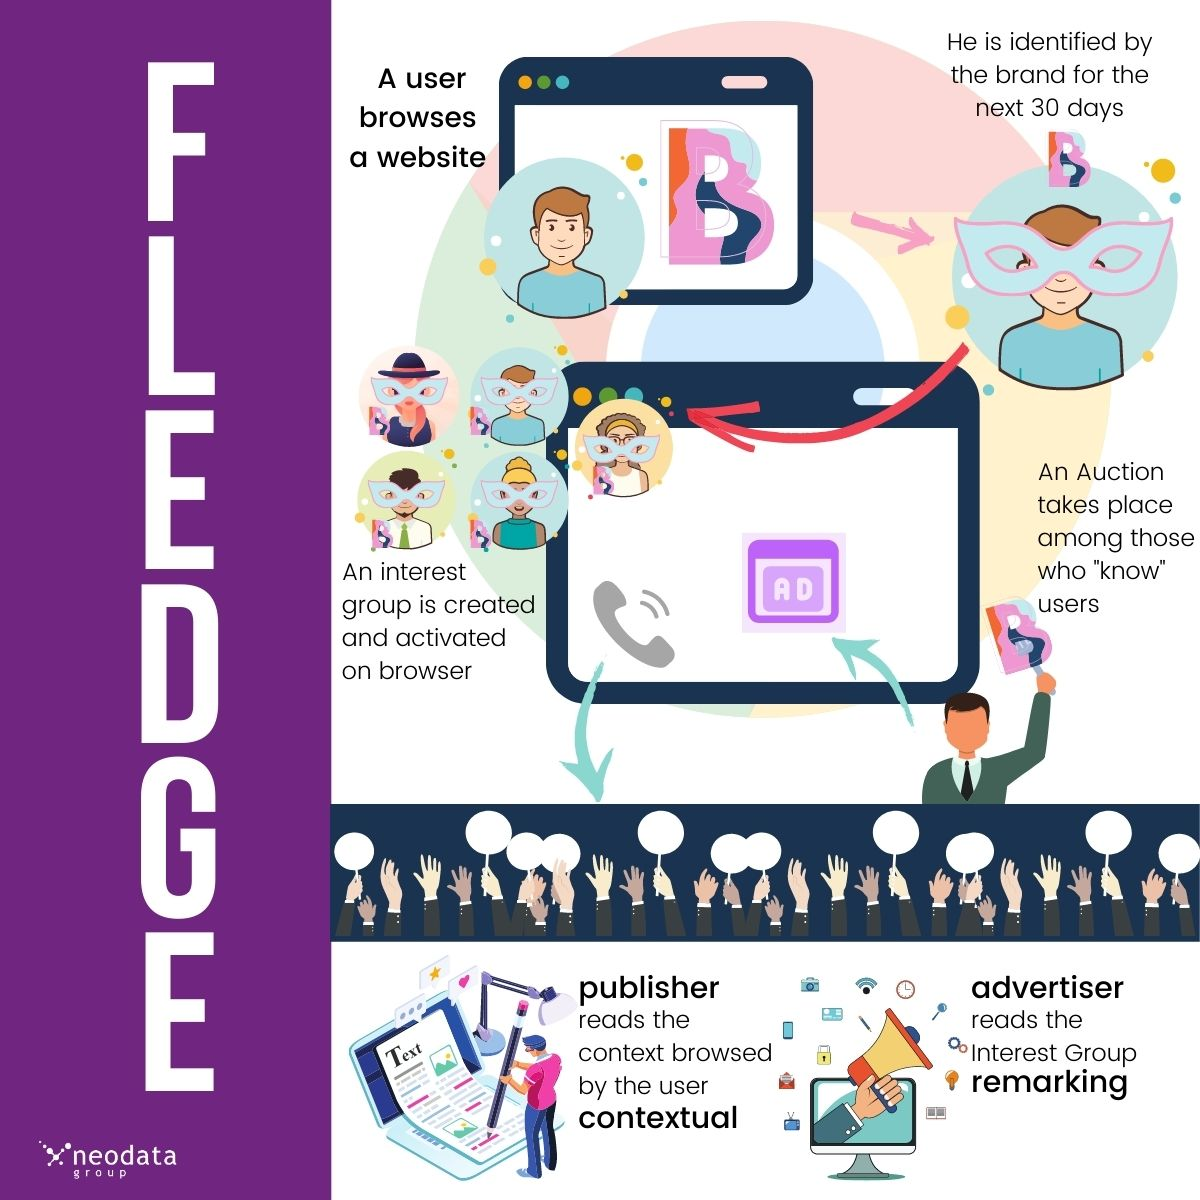 FLEDGE: the other side of the FLoC